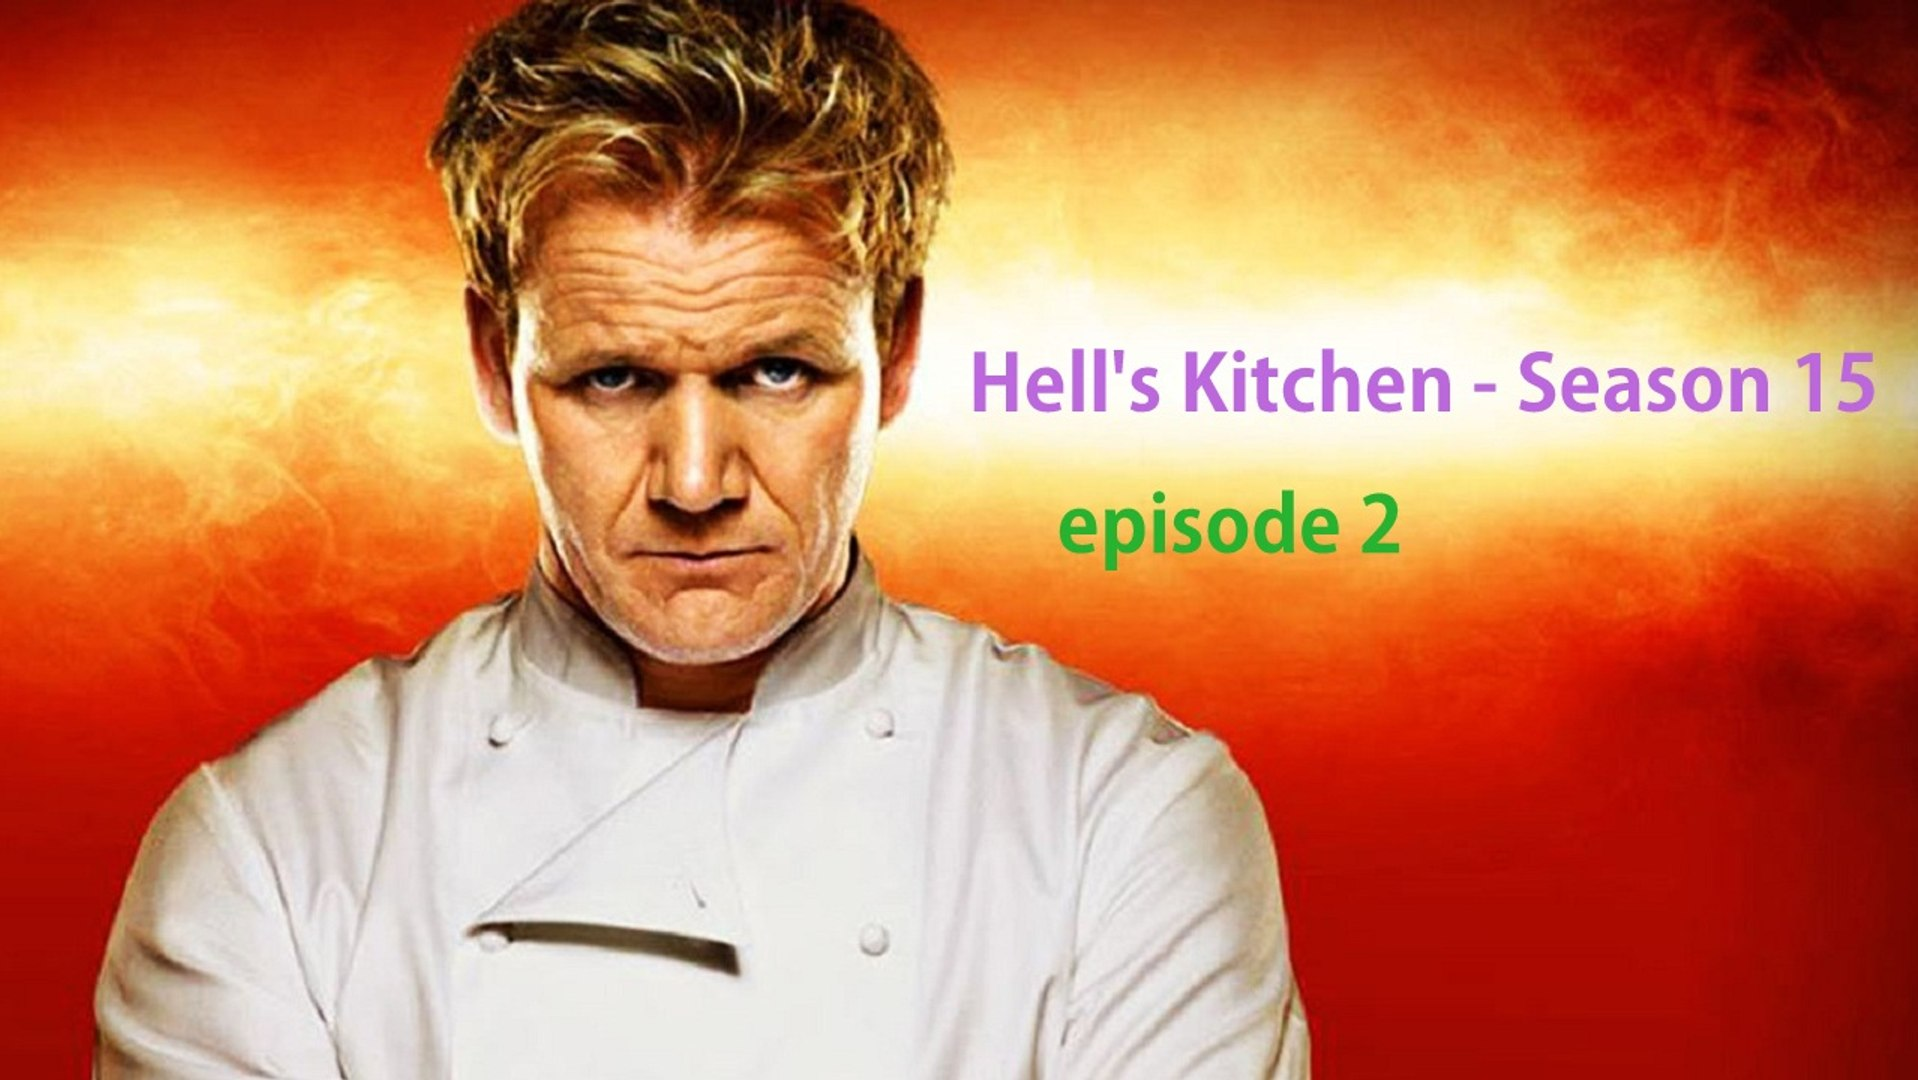 Marvelous Hells Kitchen Season 15 Episode 2 17 Chefs Compete Download Free Architecture Designs Remcamadebymaigaardcom